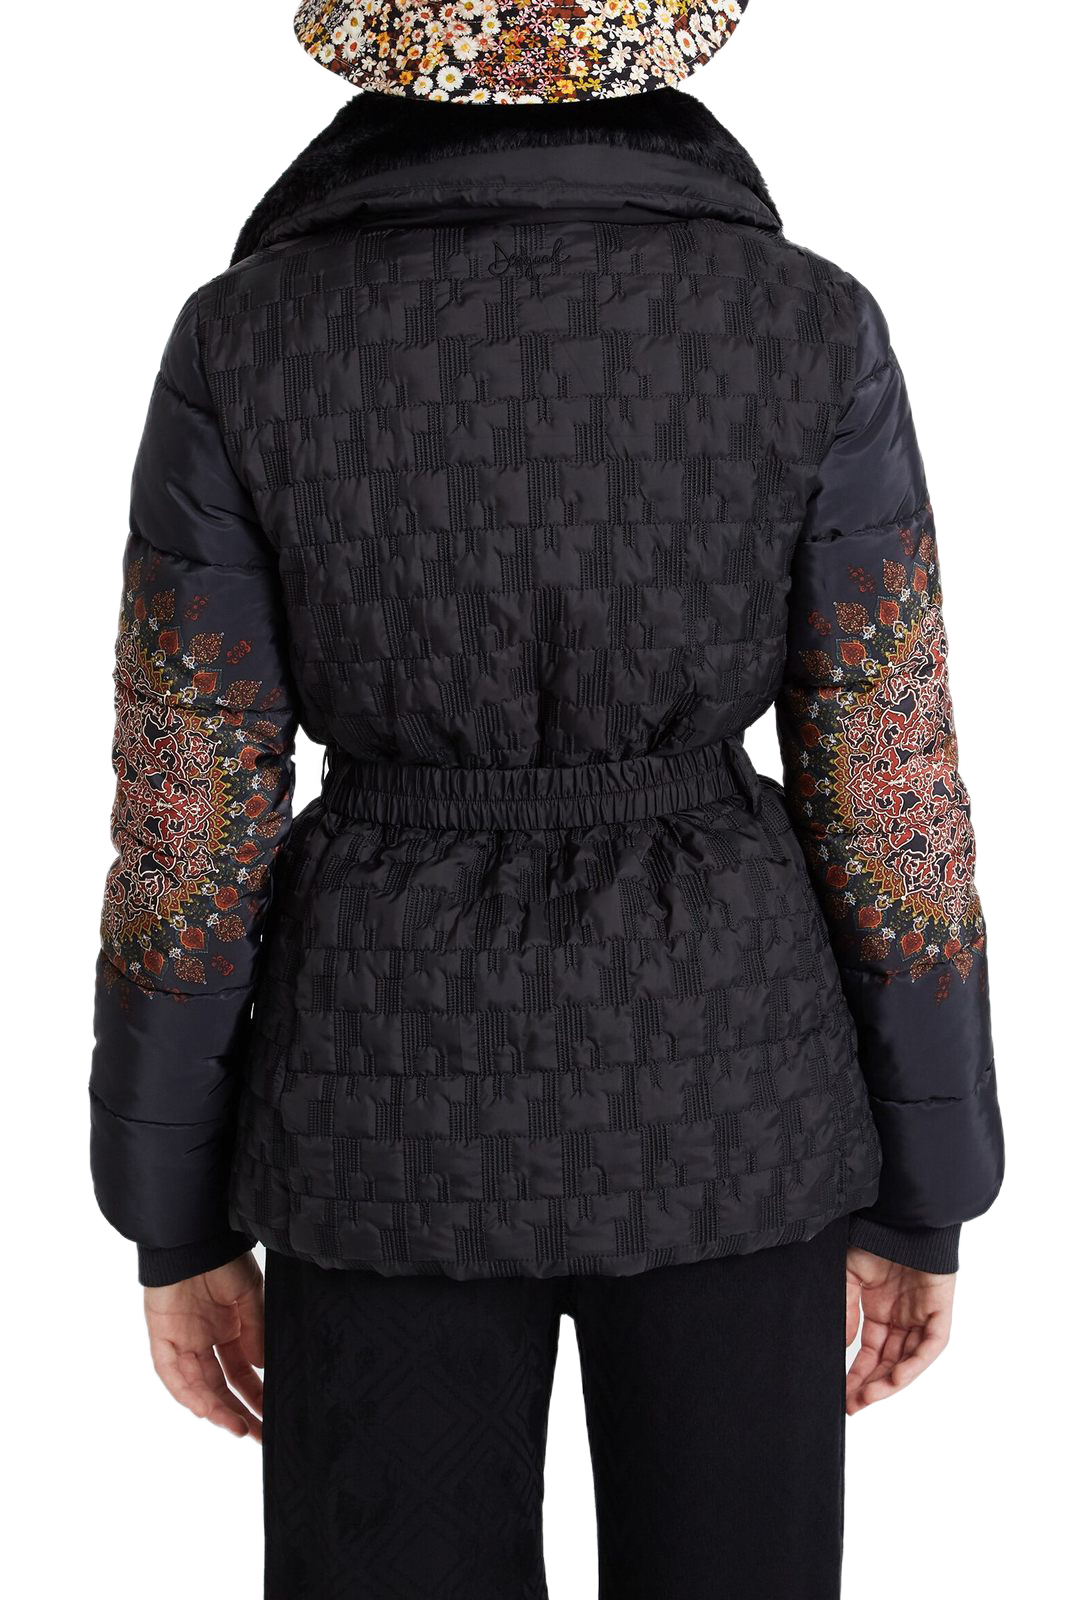 Desigual black jacket Padded Agu